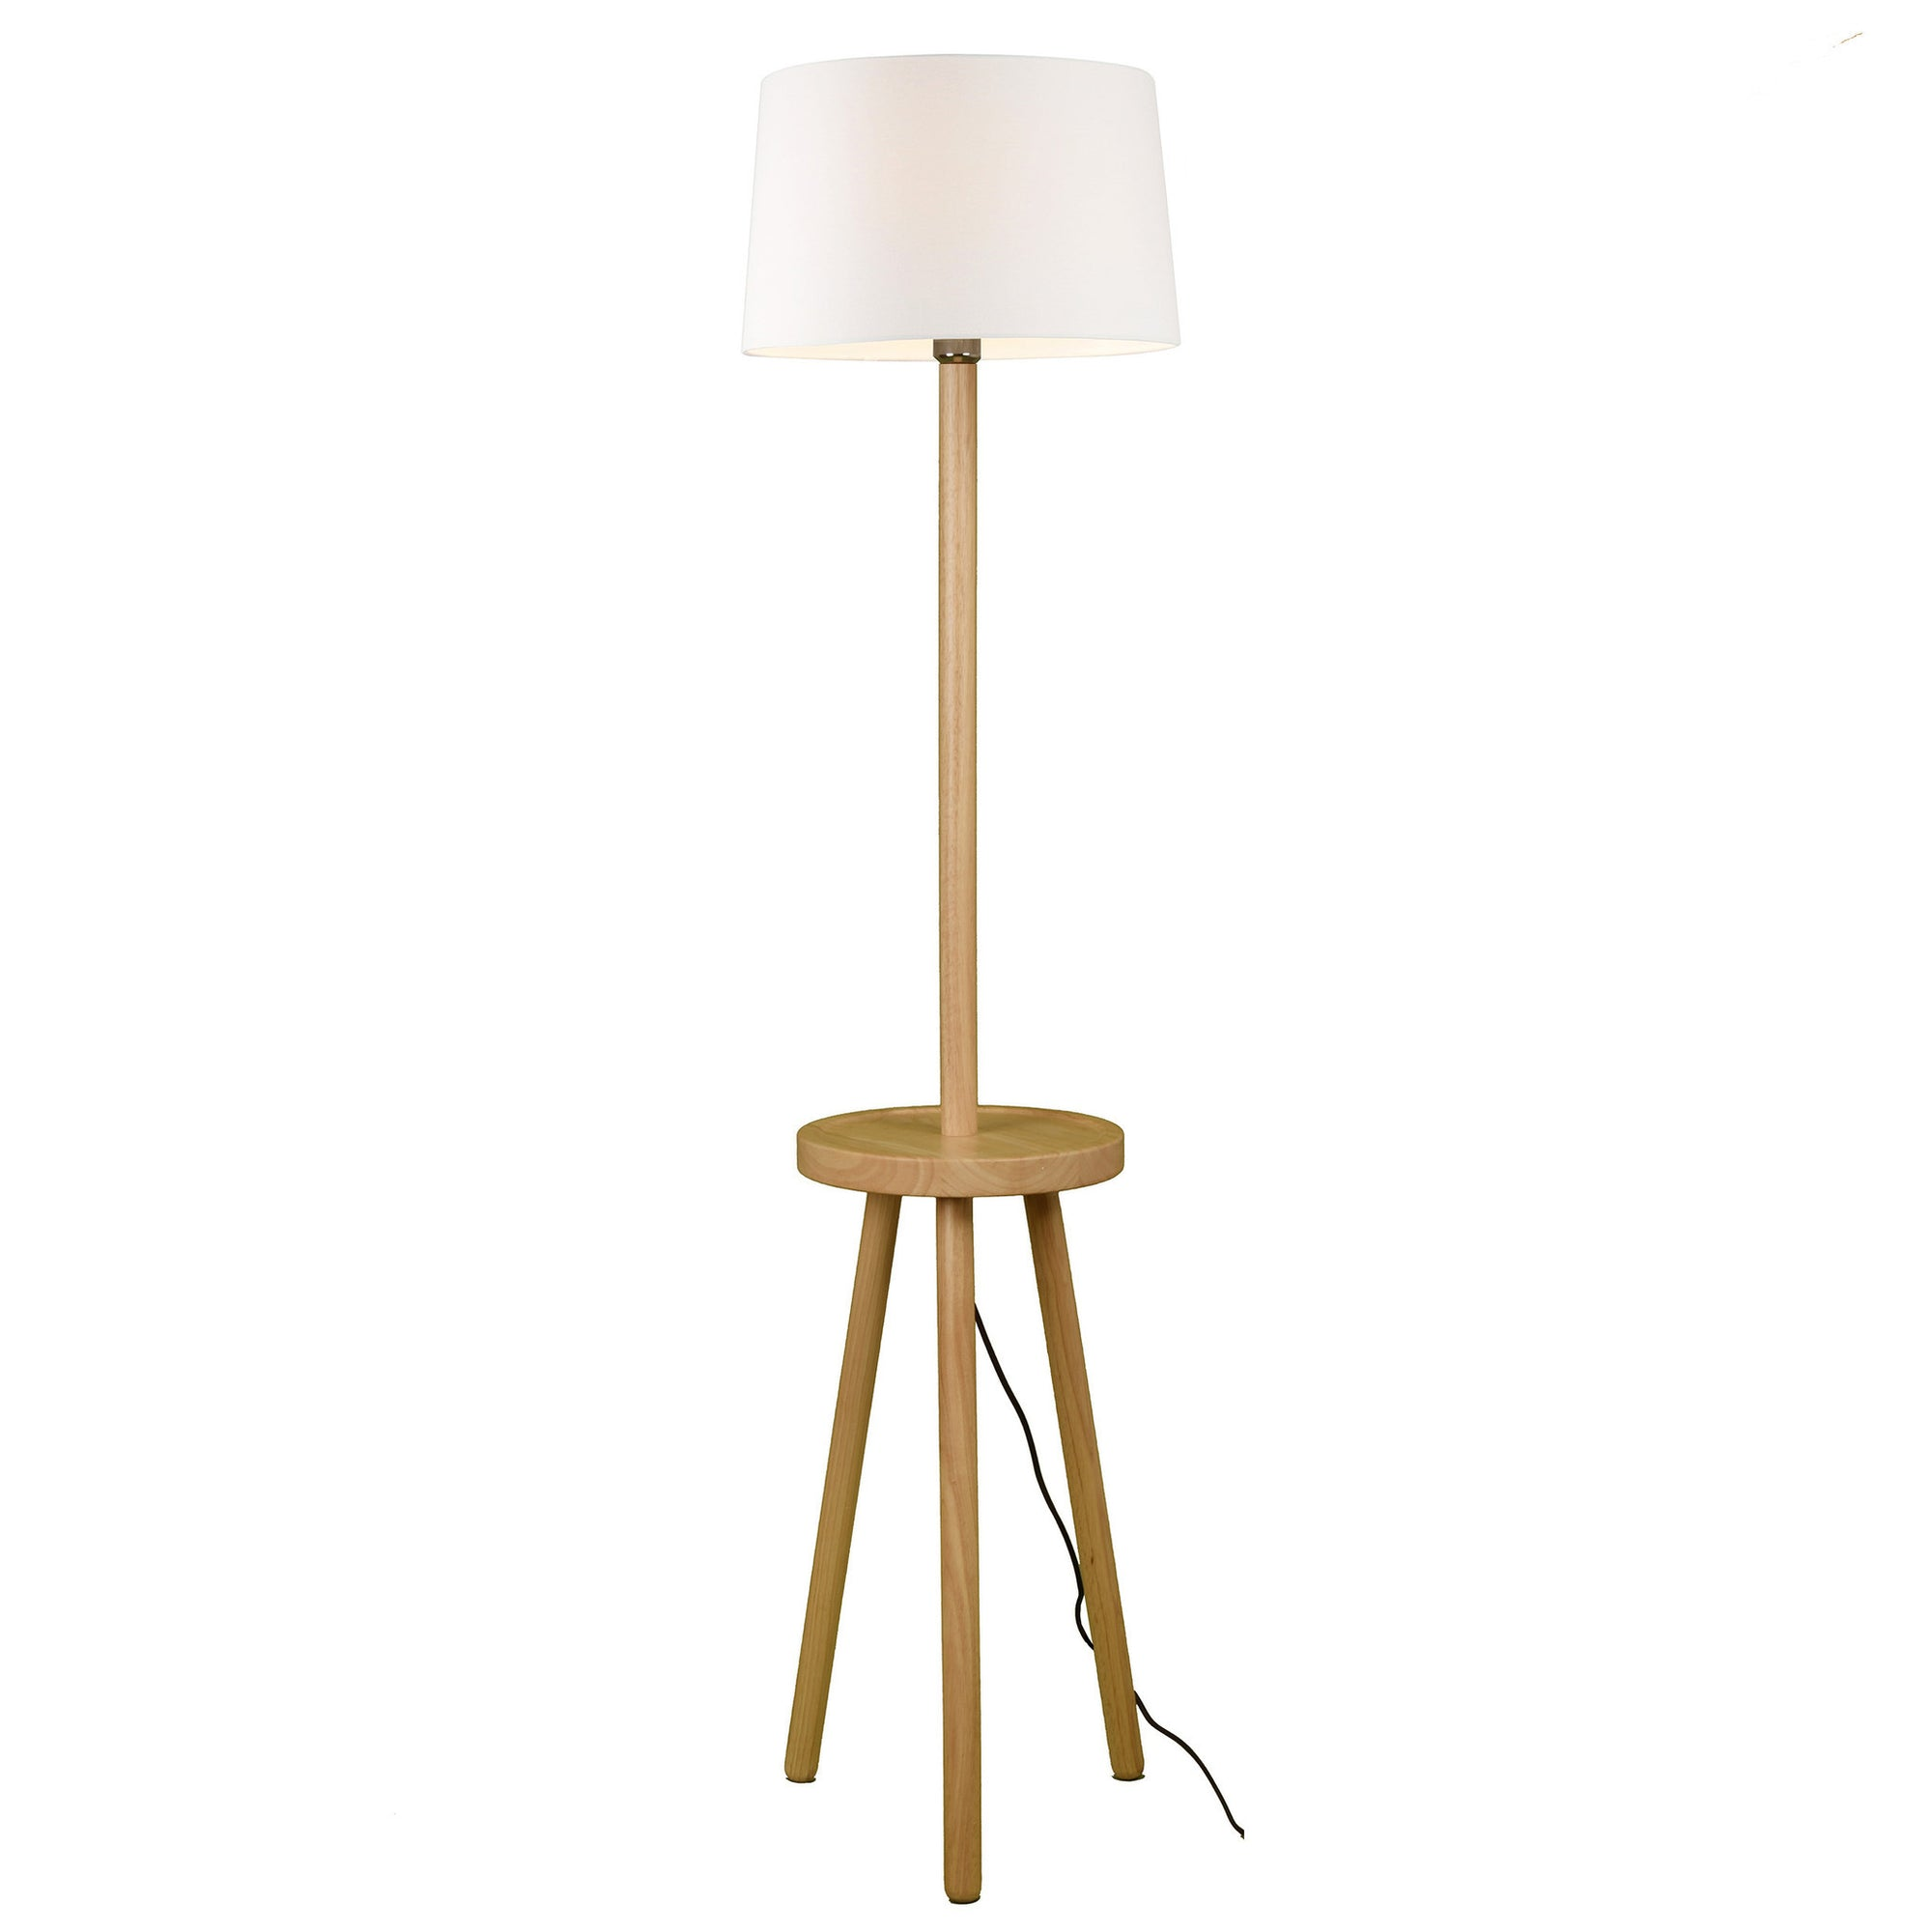 Solid Wood floor lamp BPMT15-N